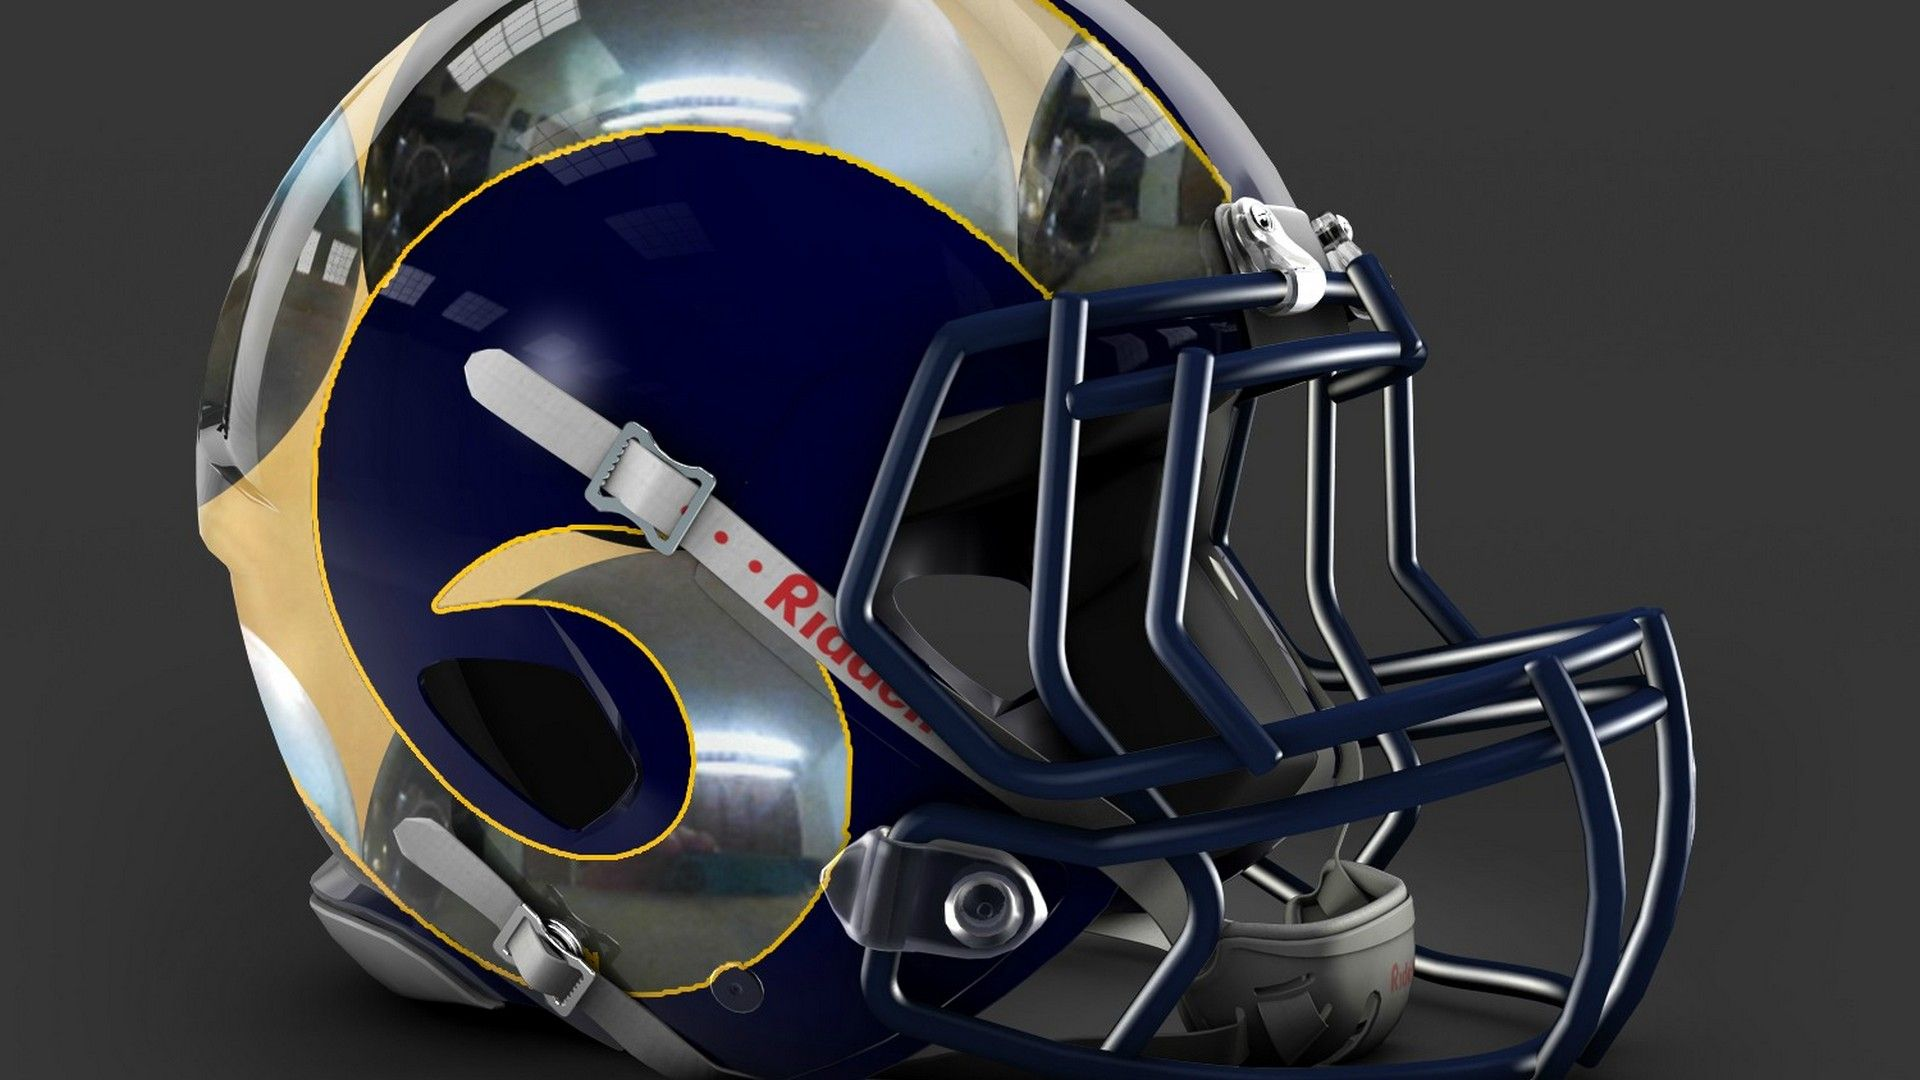 Los Angeles Rams For PC Wallpaper Nfl football helmets